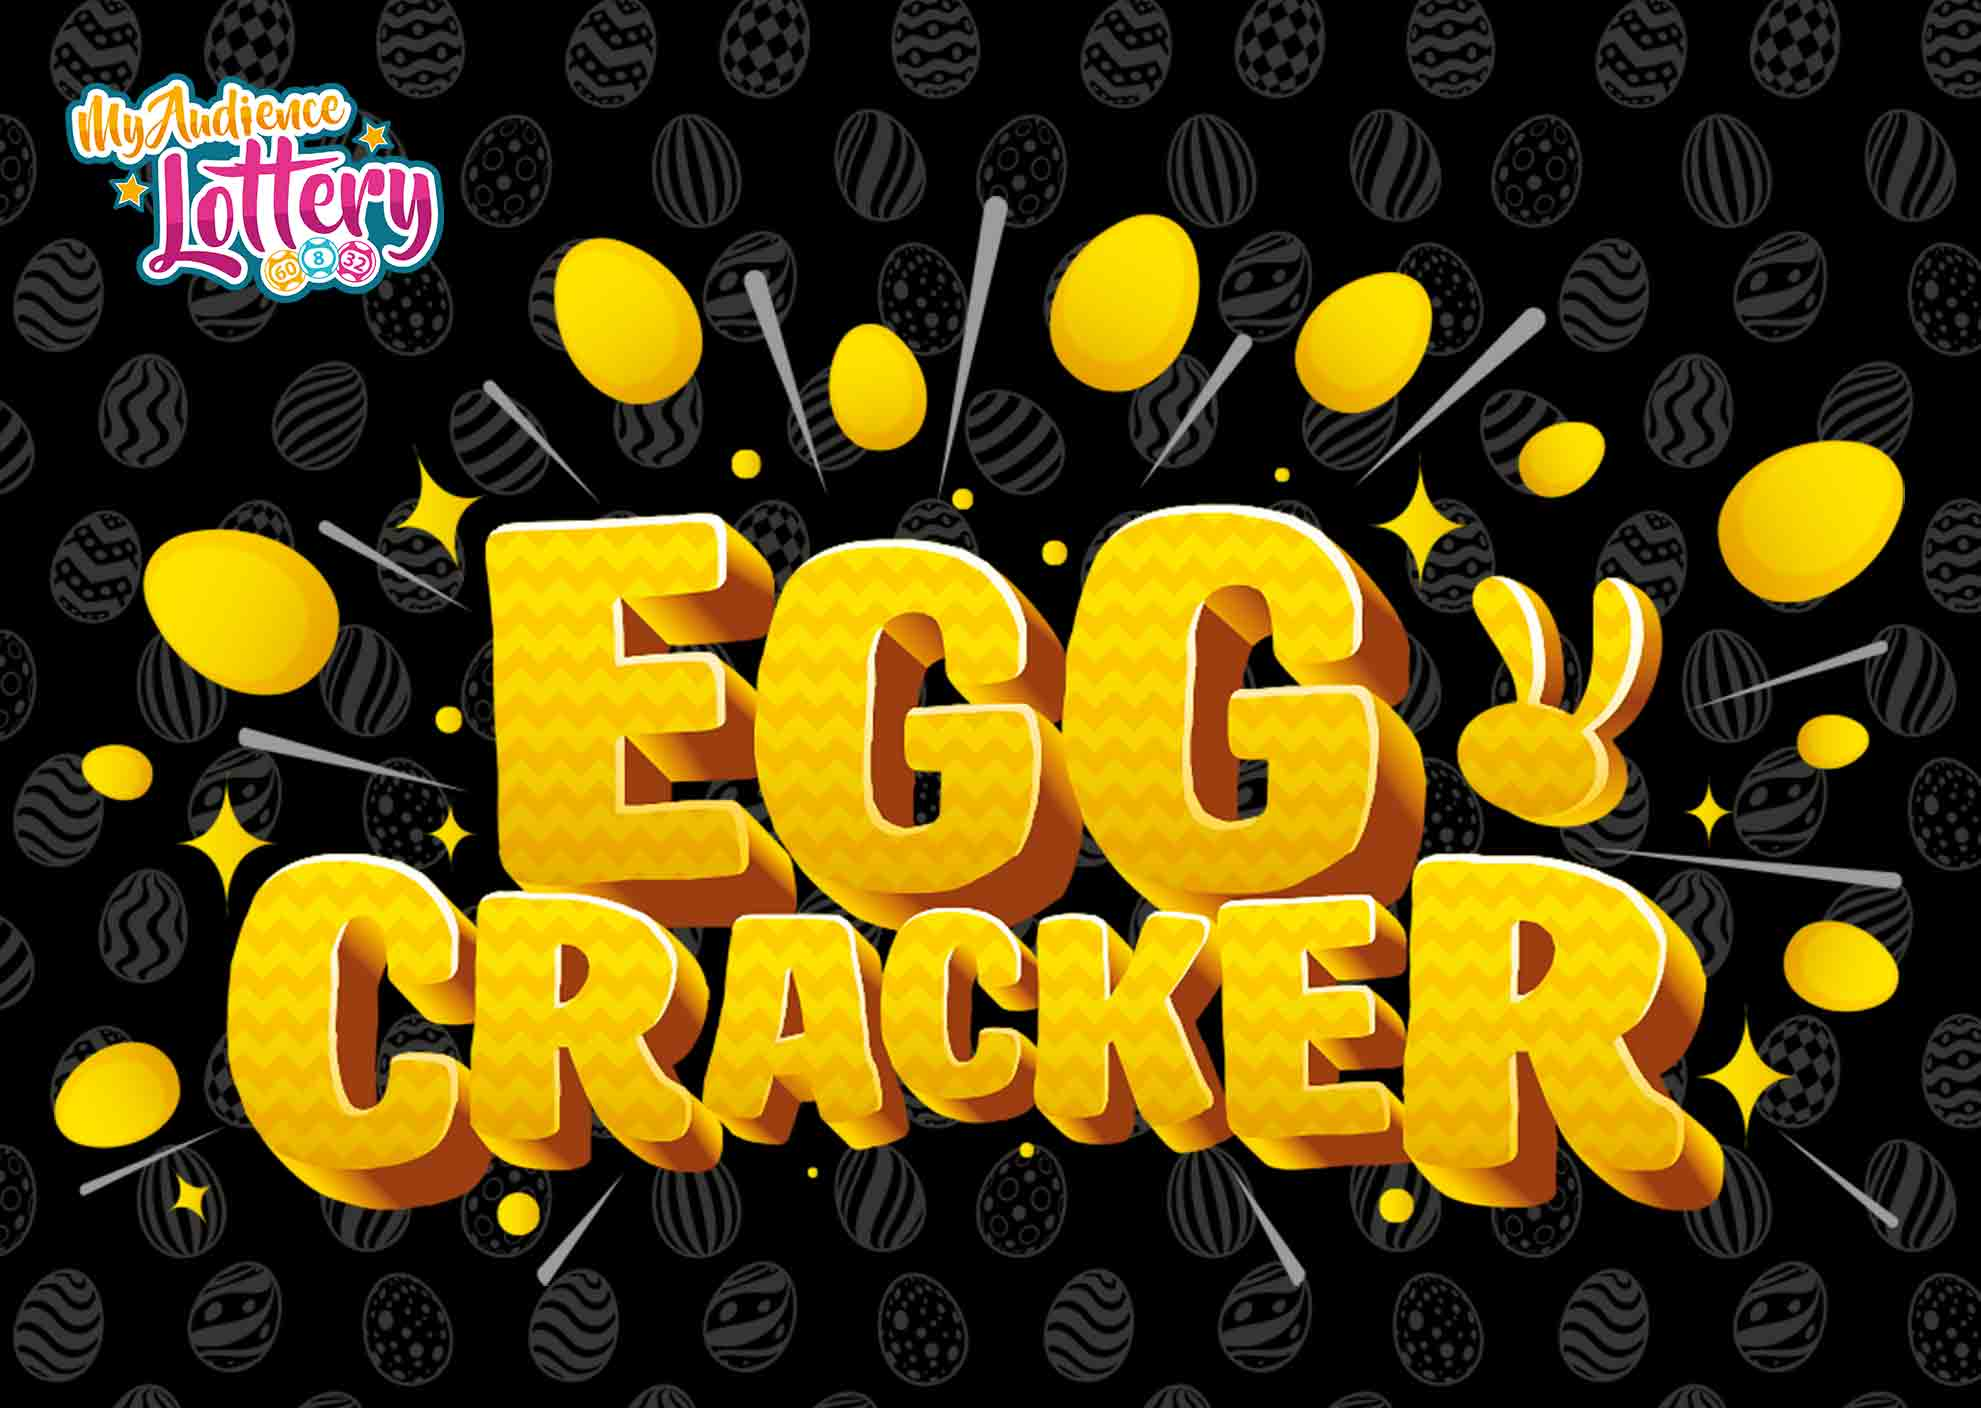 MyAudience Easter egg-cracker scratchcard